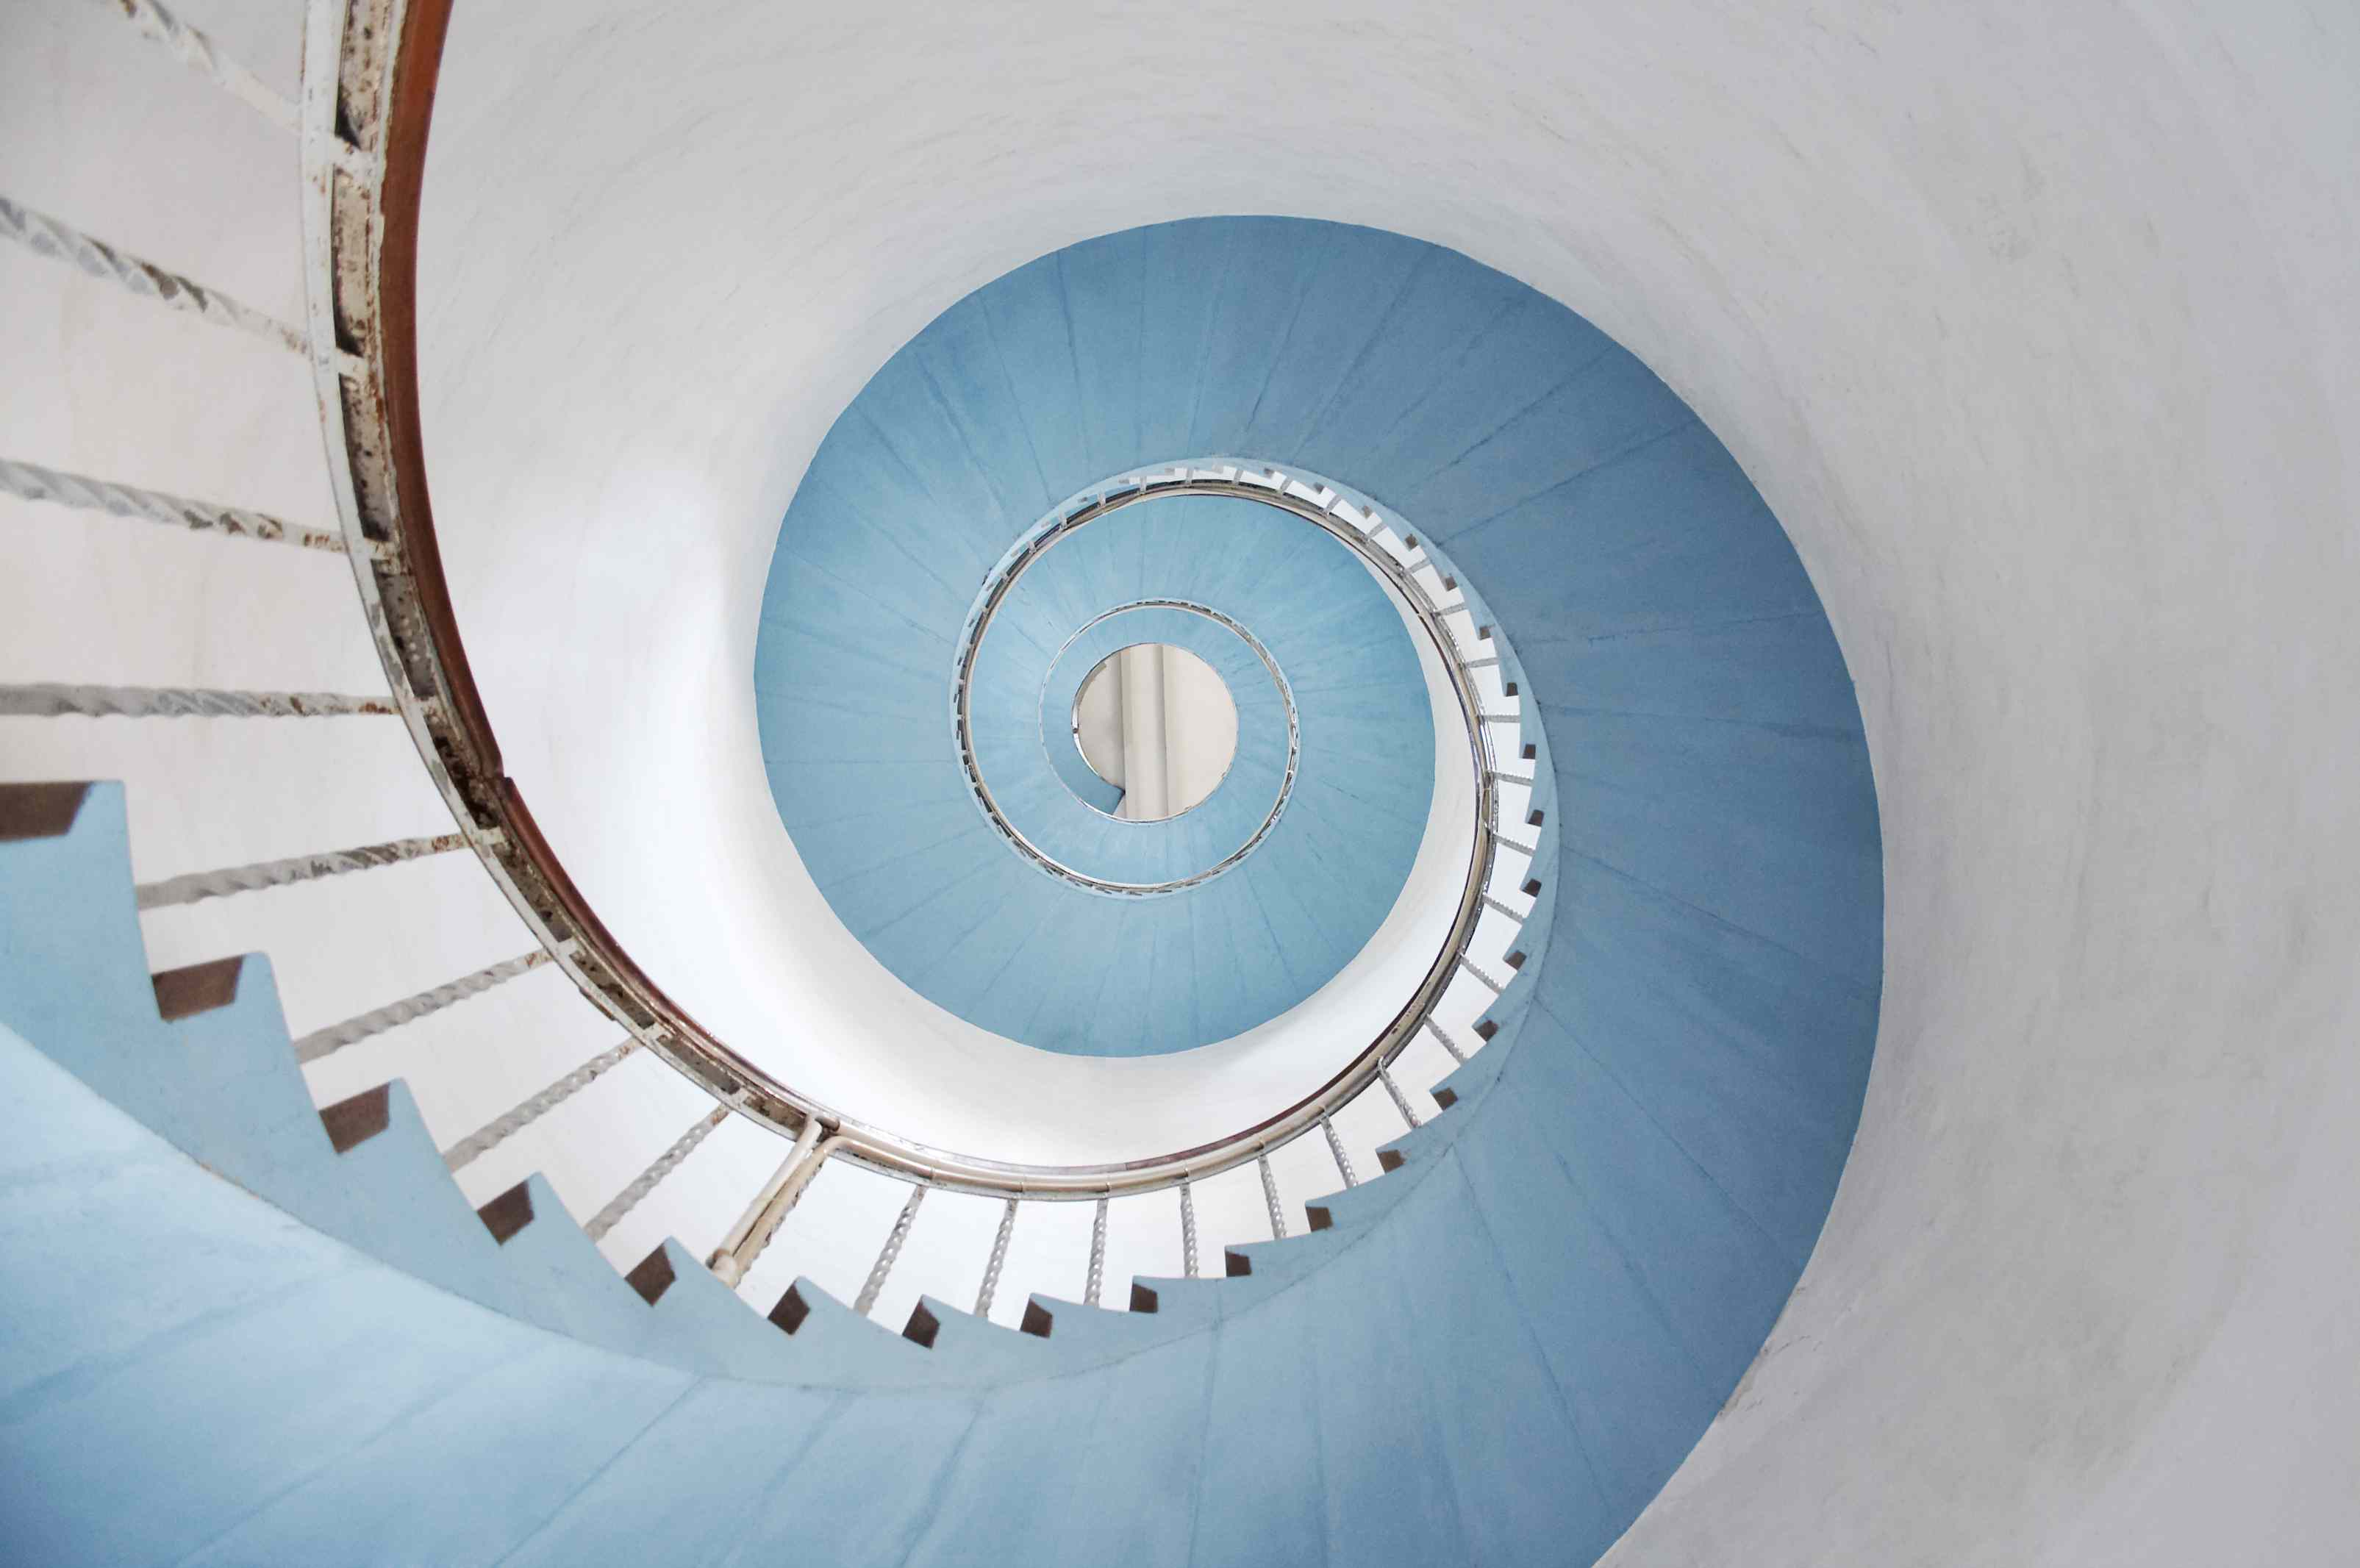 A blue and white spiral staircase